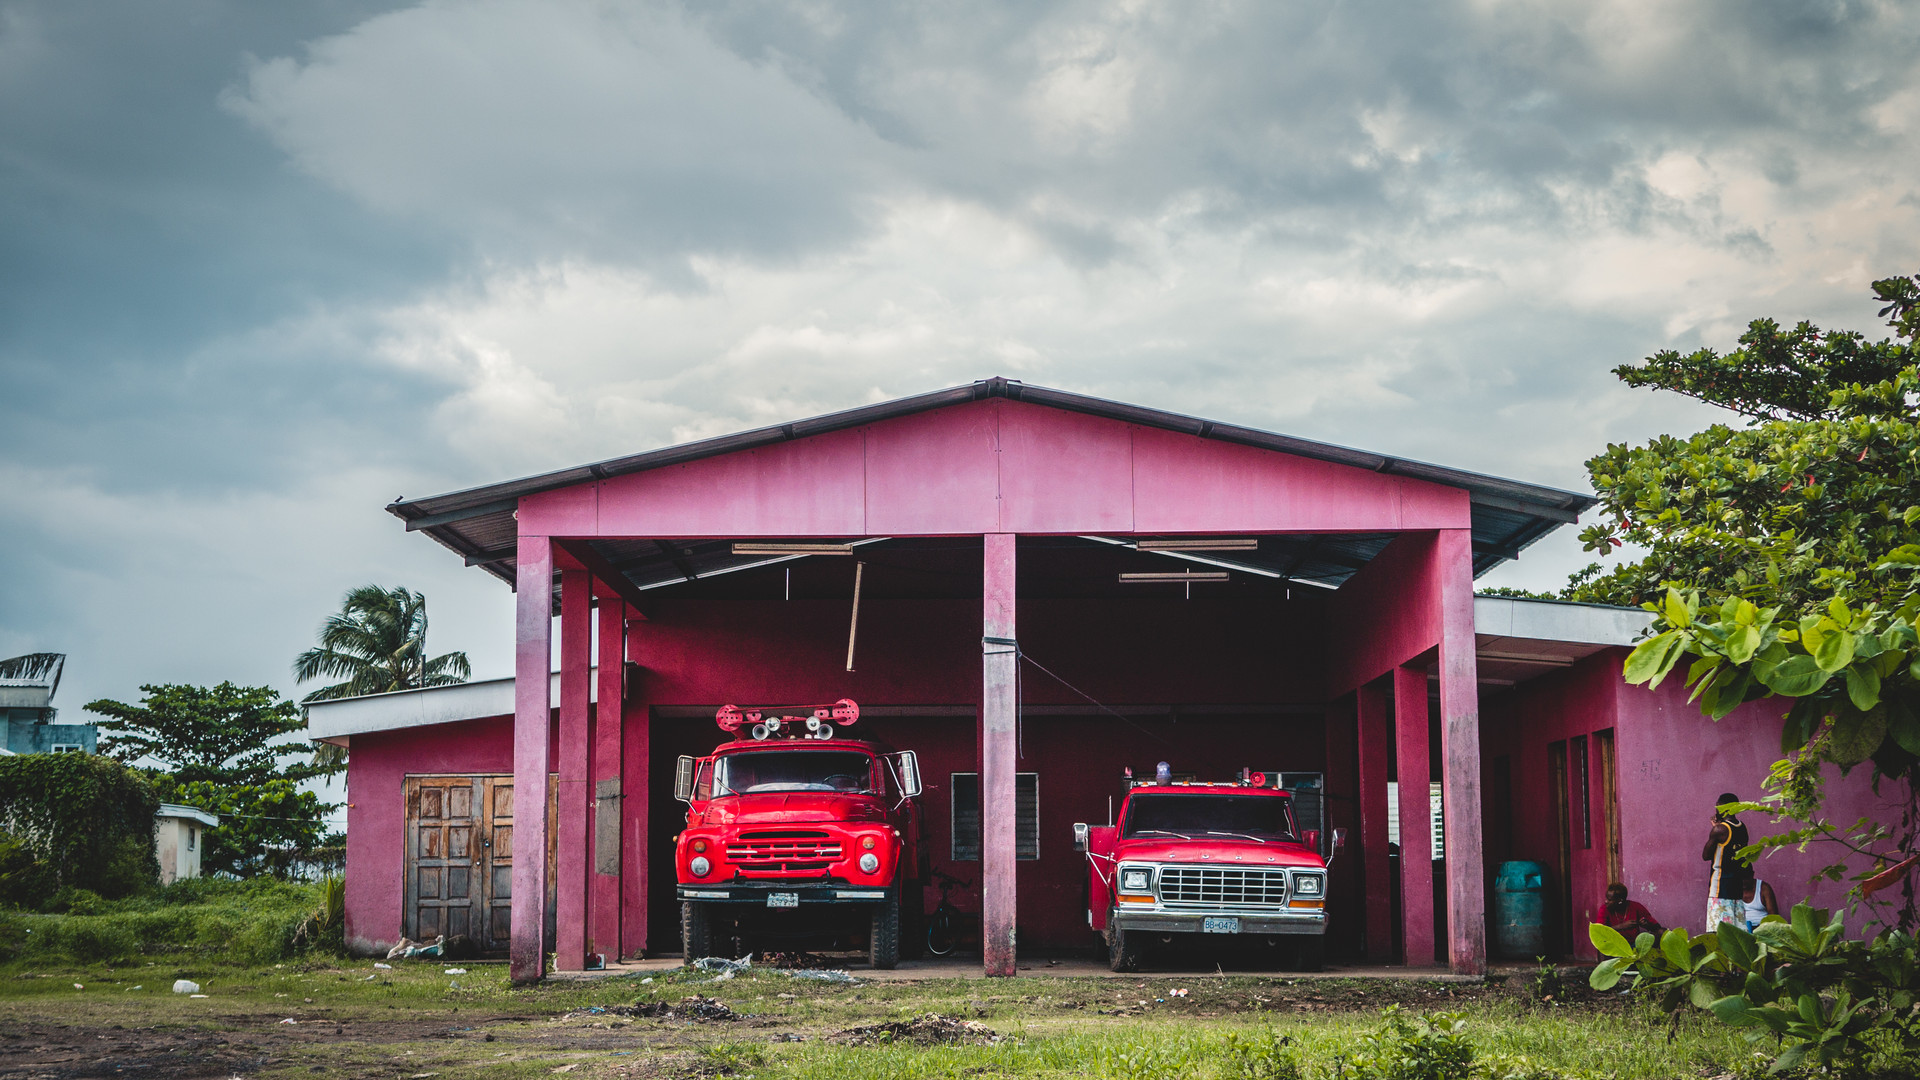 Old firetrucks in a rouge house under dark and cloudy sky